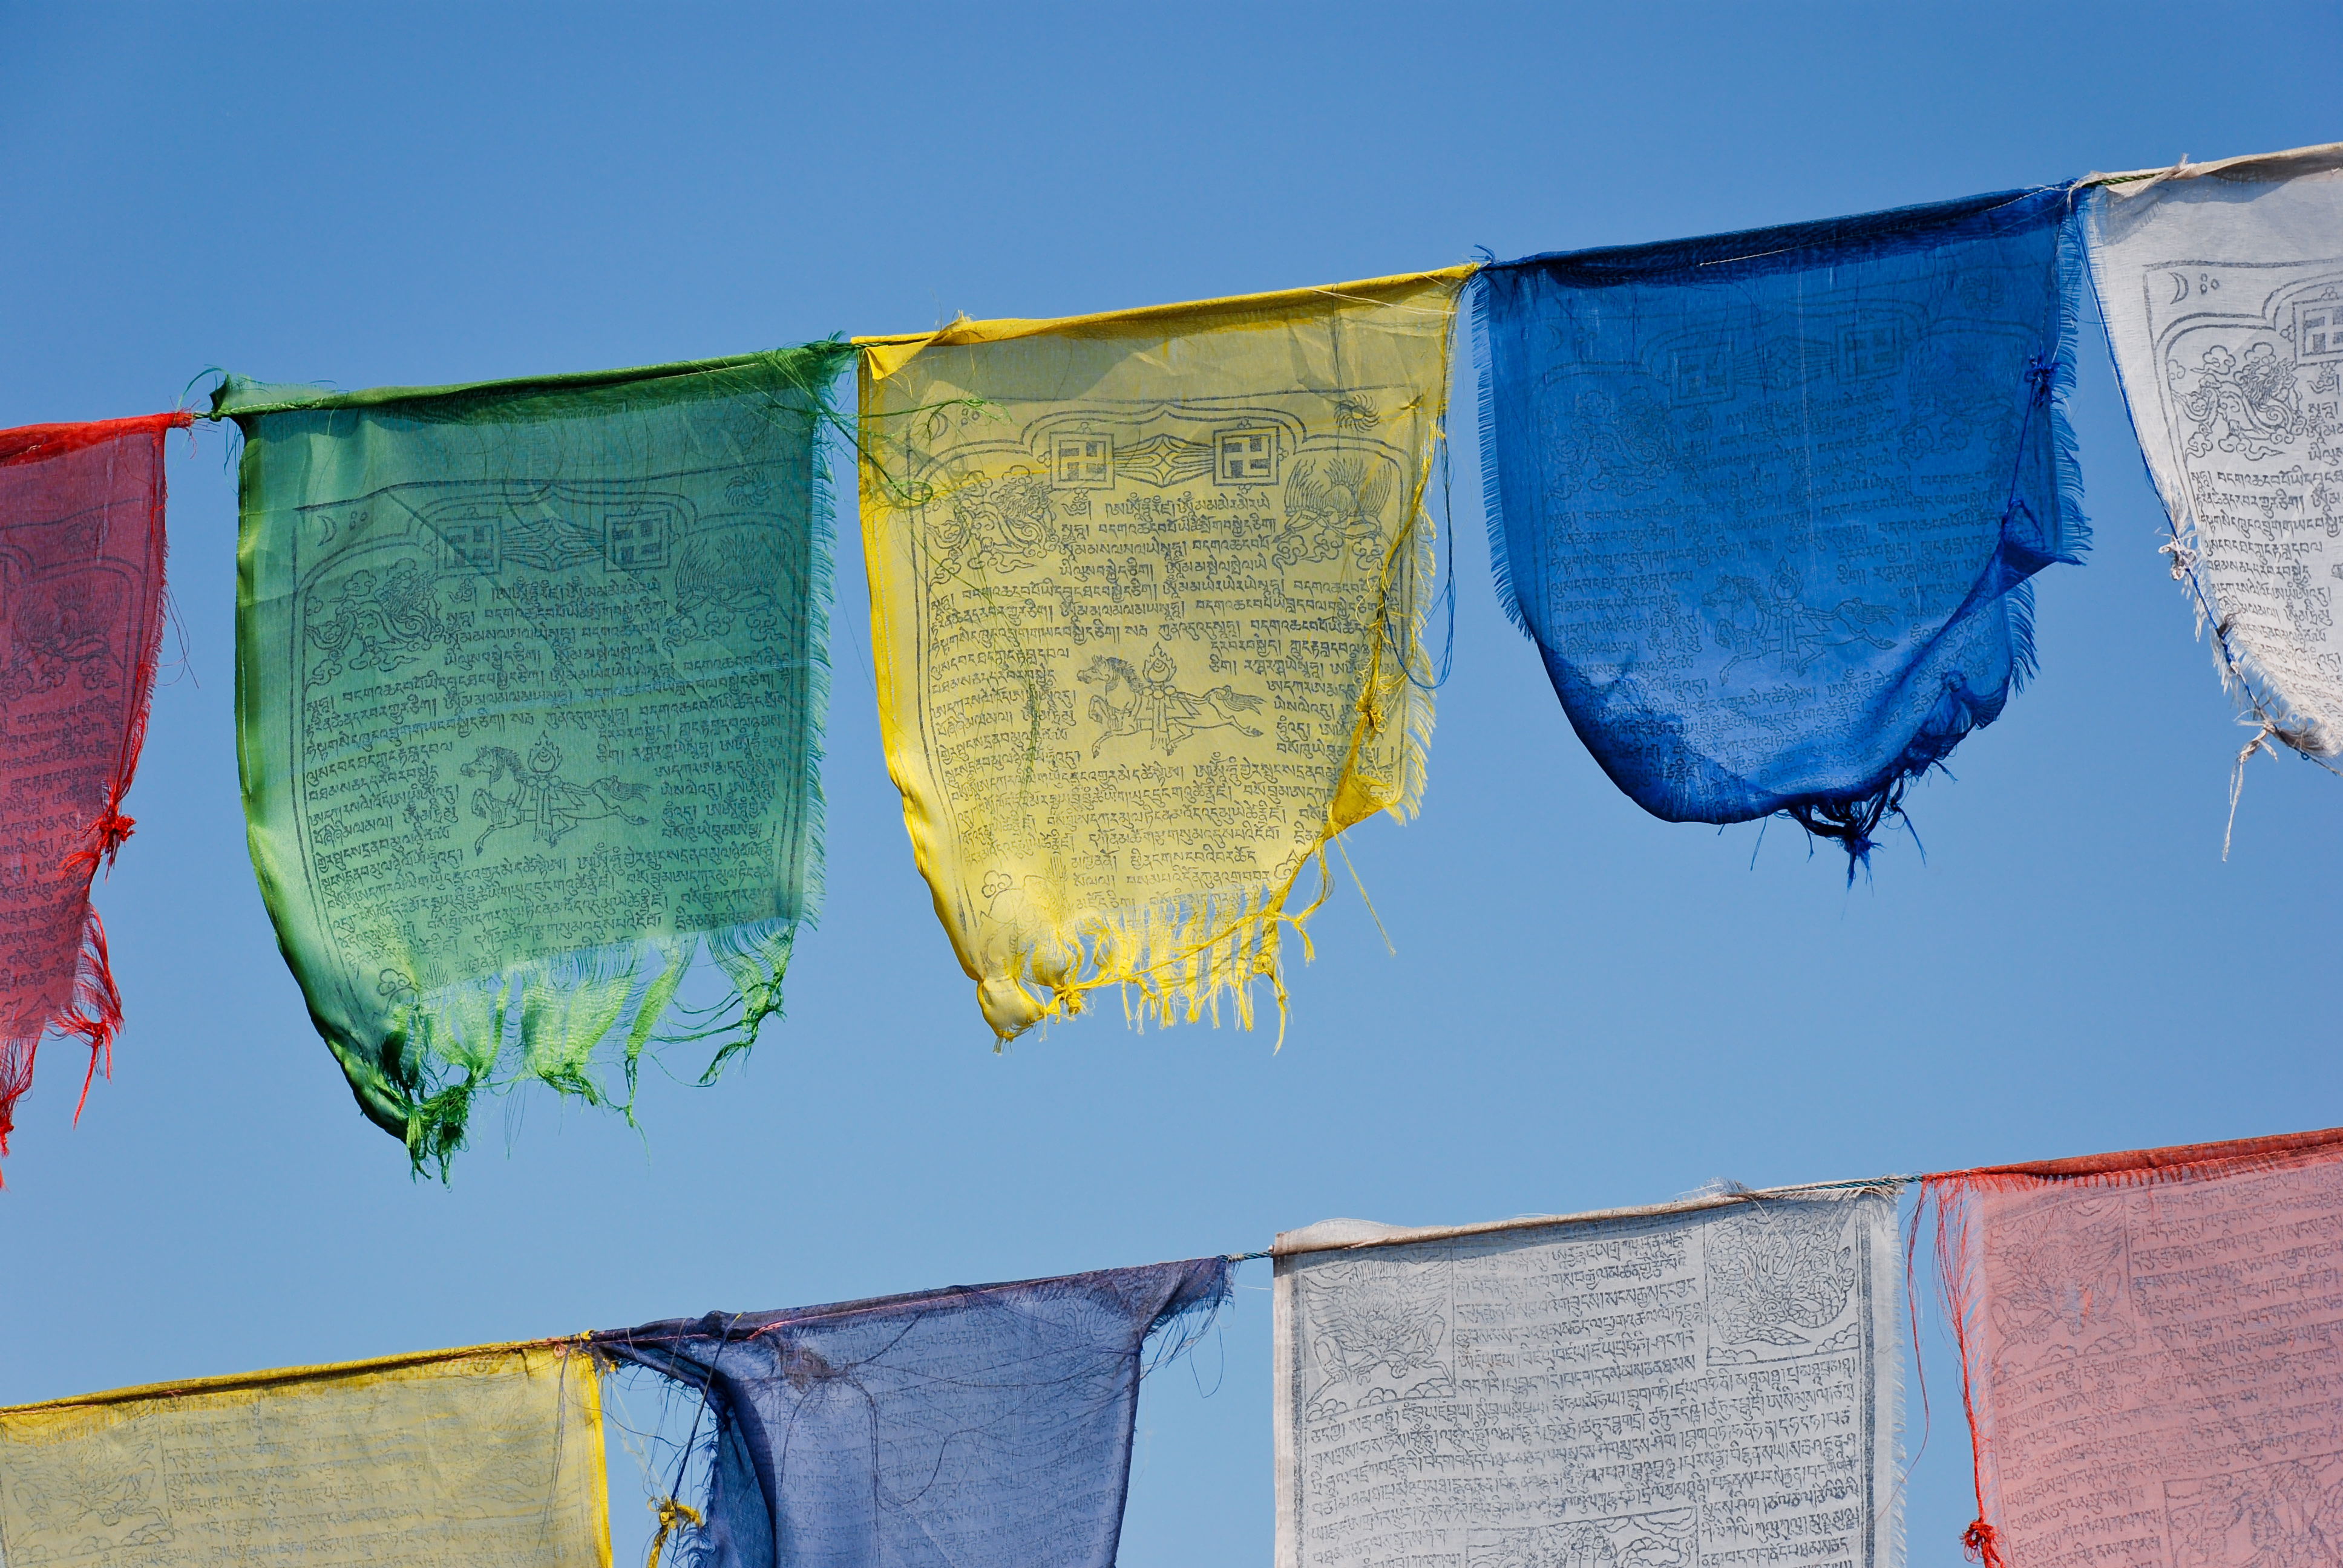 Tibetan prayer flags are traditionally used to promote peace, wisdom, compassion, and strength. It is commonly thought that prayer flags offer prayers to God. They.